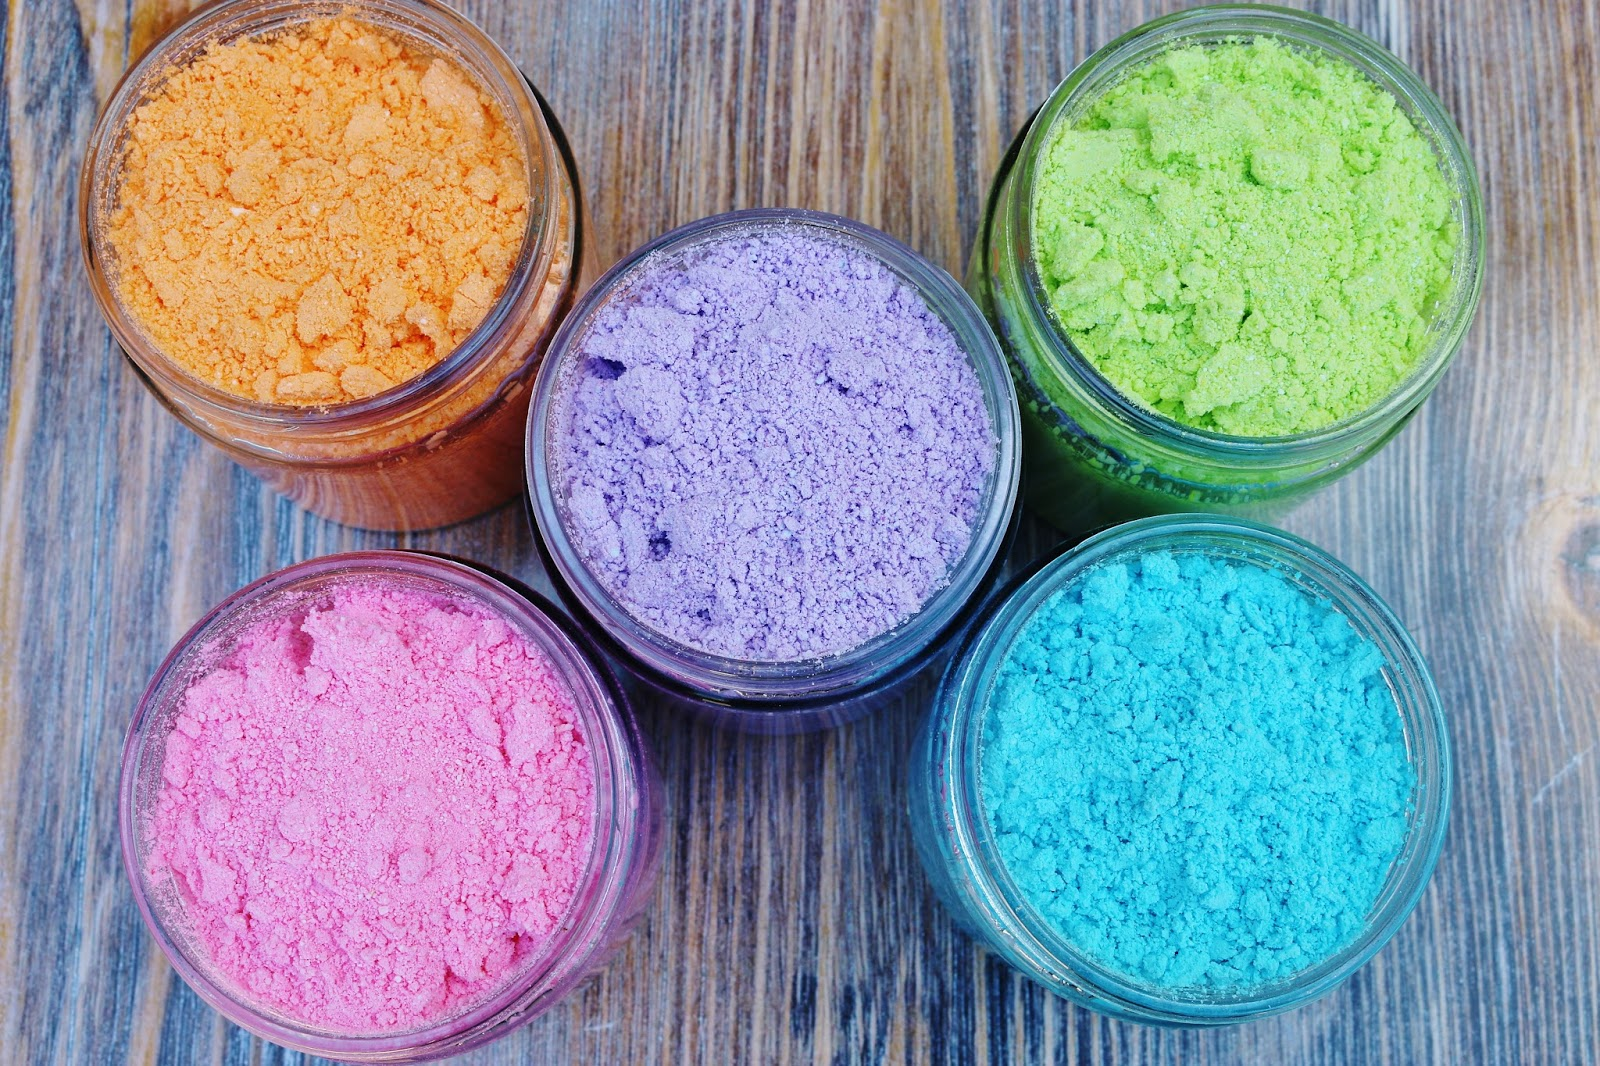 My Simple Modest Chic: DIY Color Powder For A Color Fight!